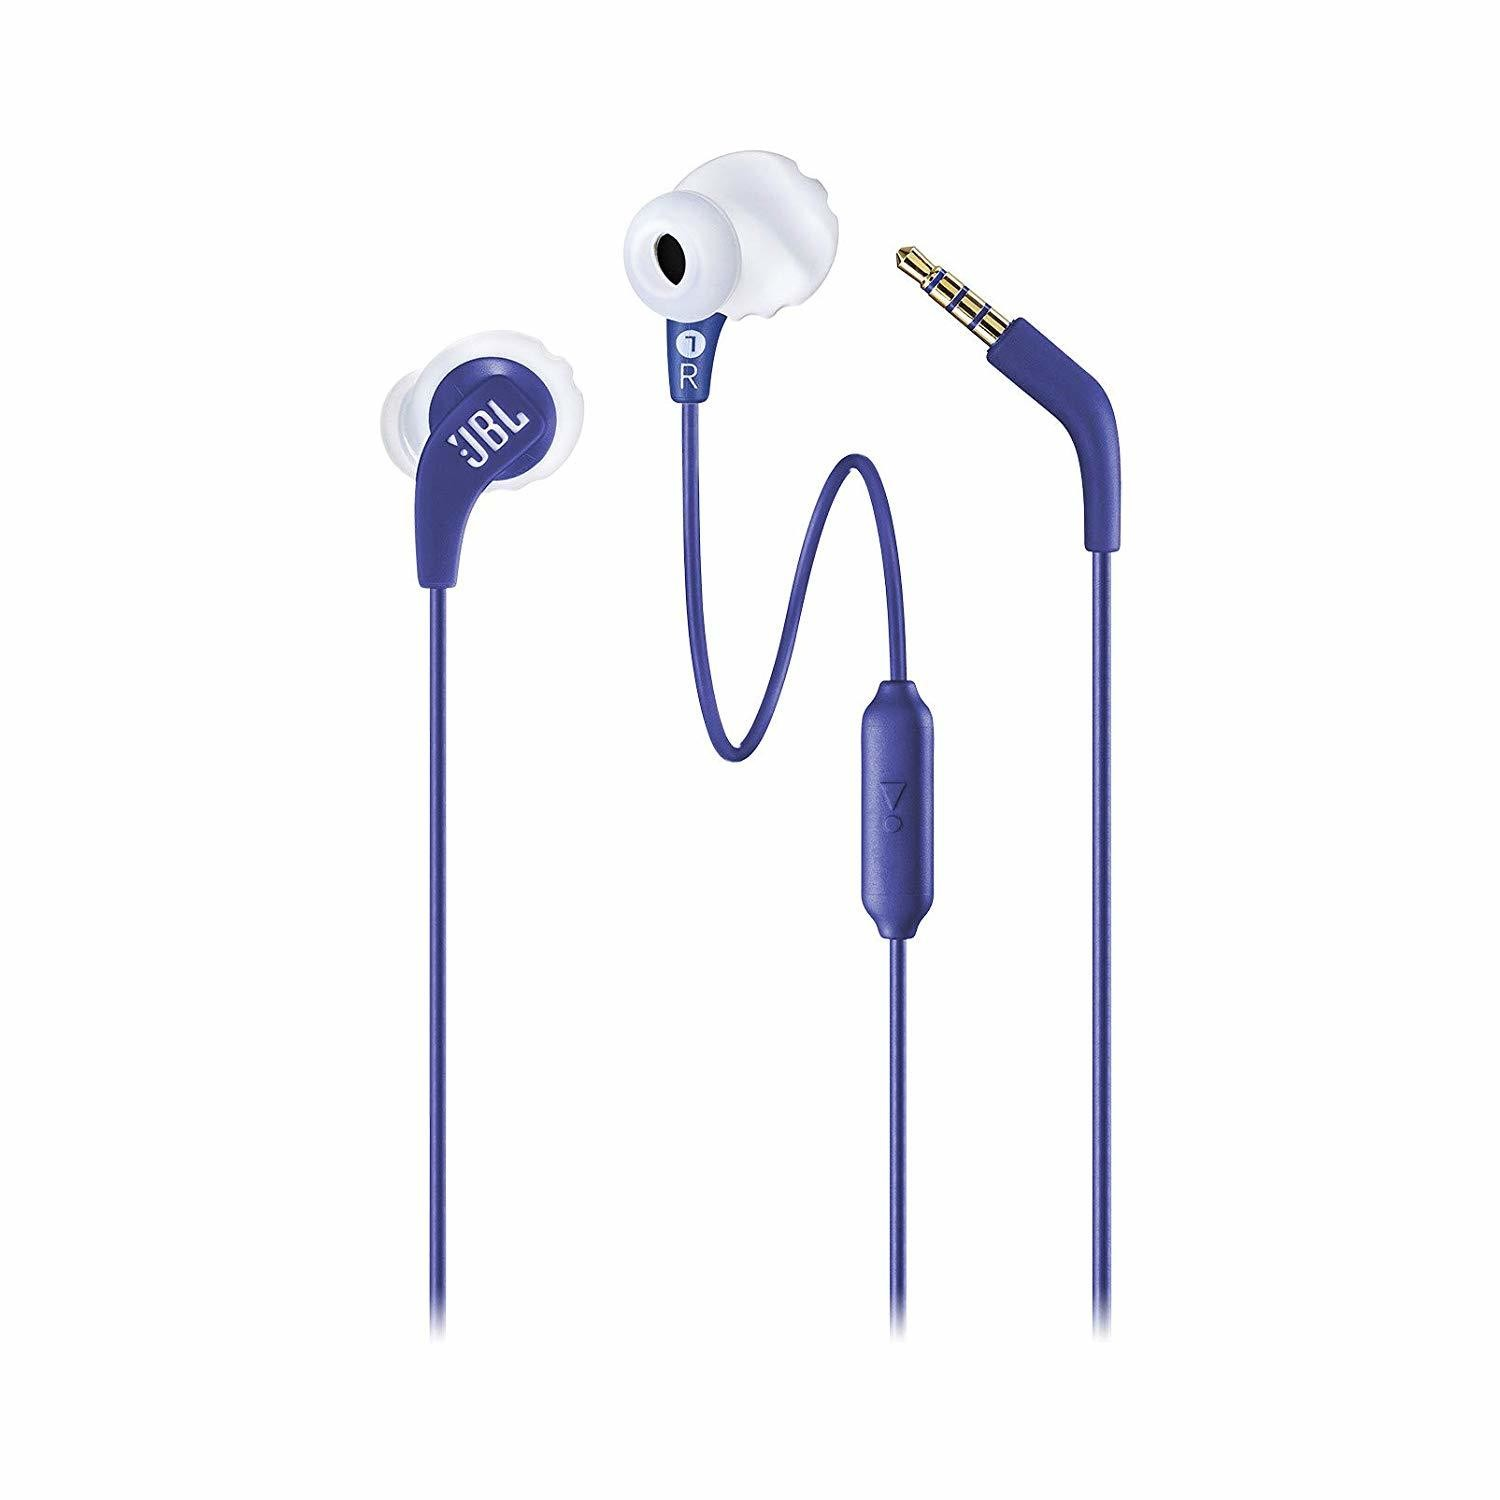 JBL Endurance Run in-Ear Headphones, Blue